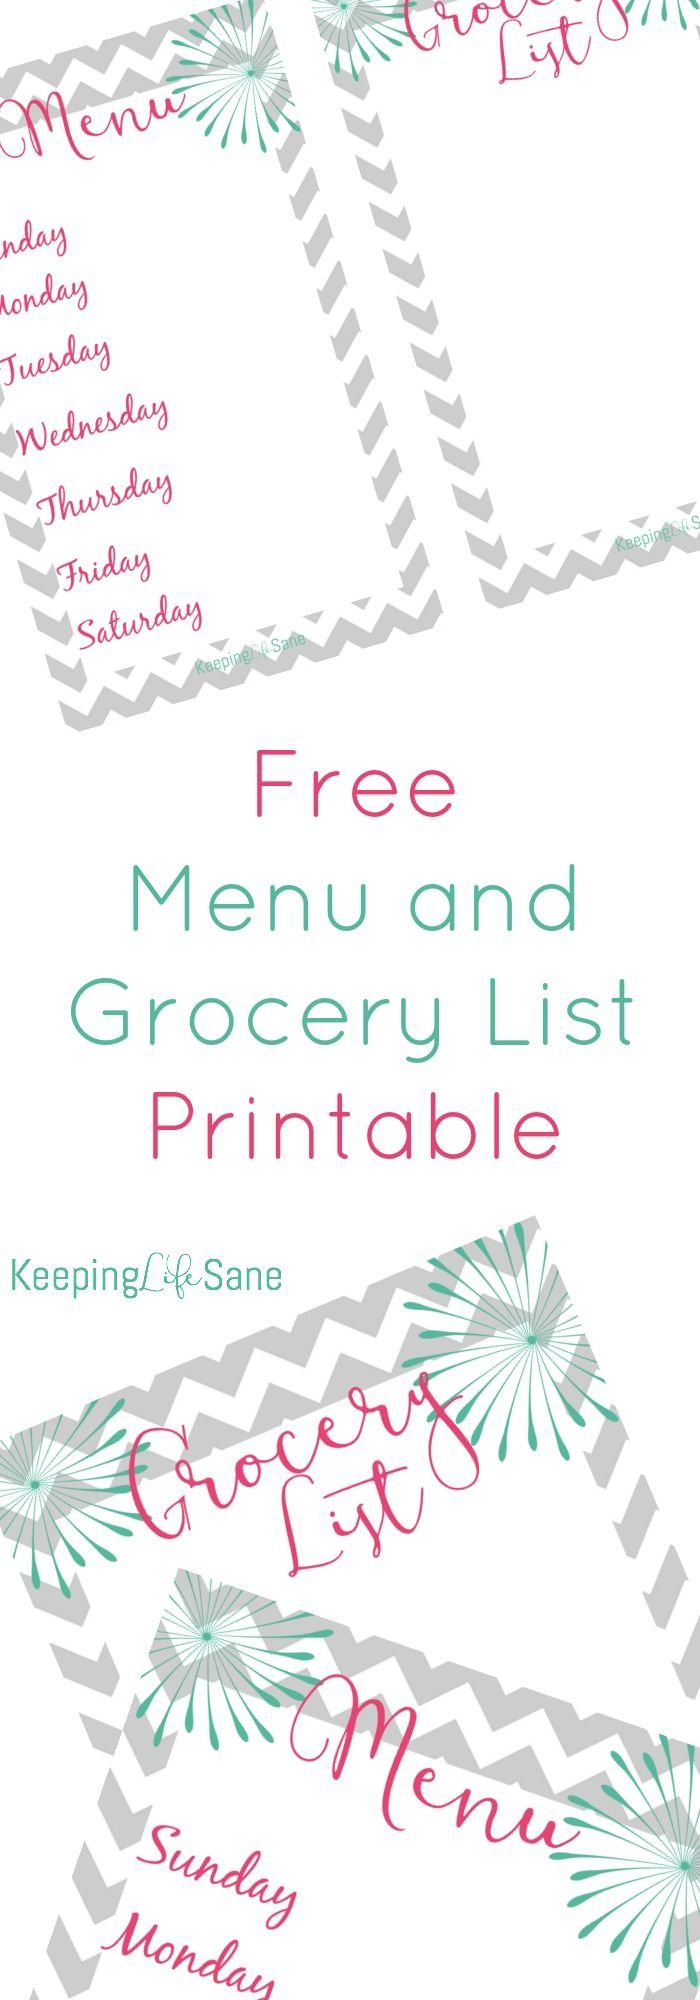 menu and grocery list free printable | menu, saving money and planners